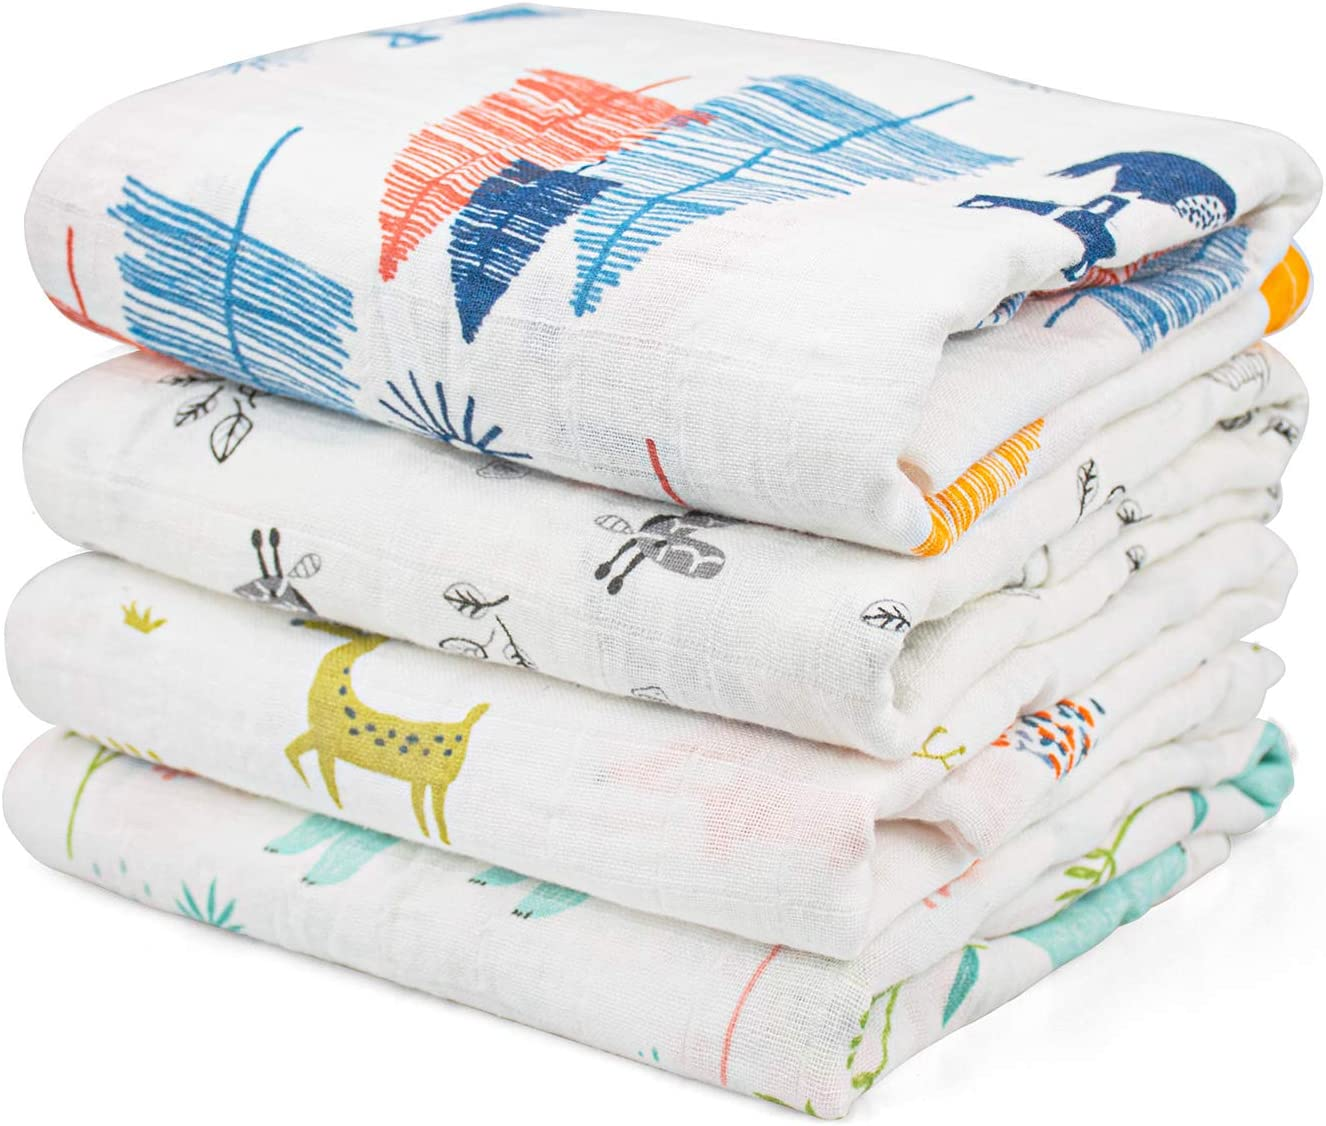 Swaddle mean